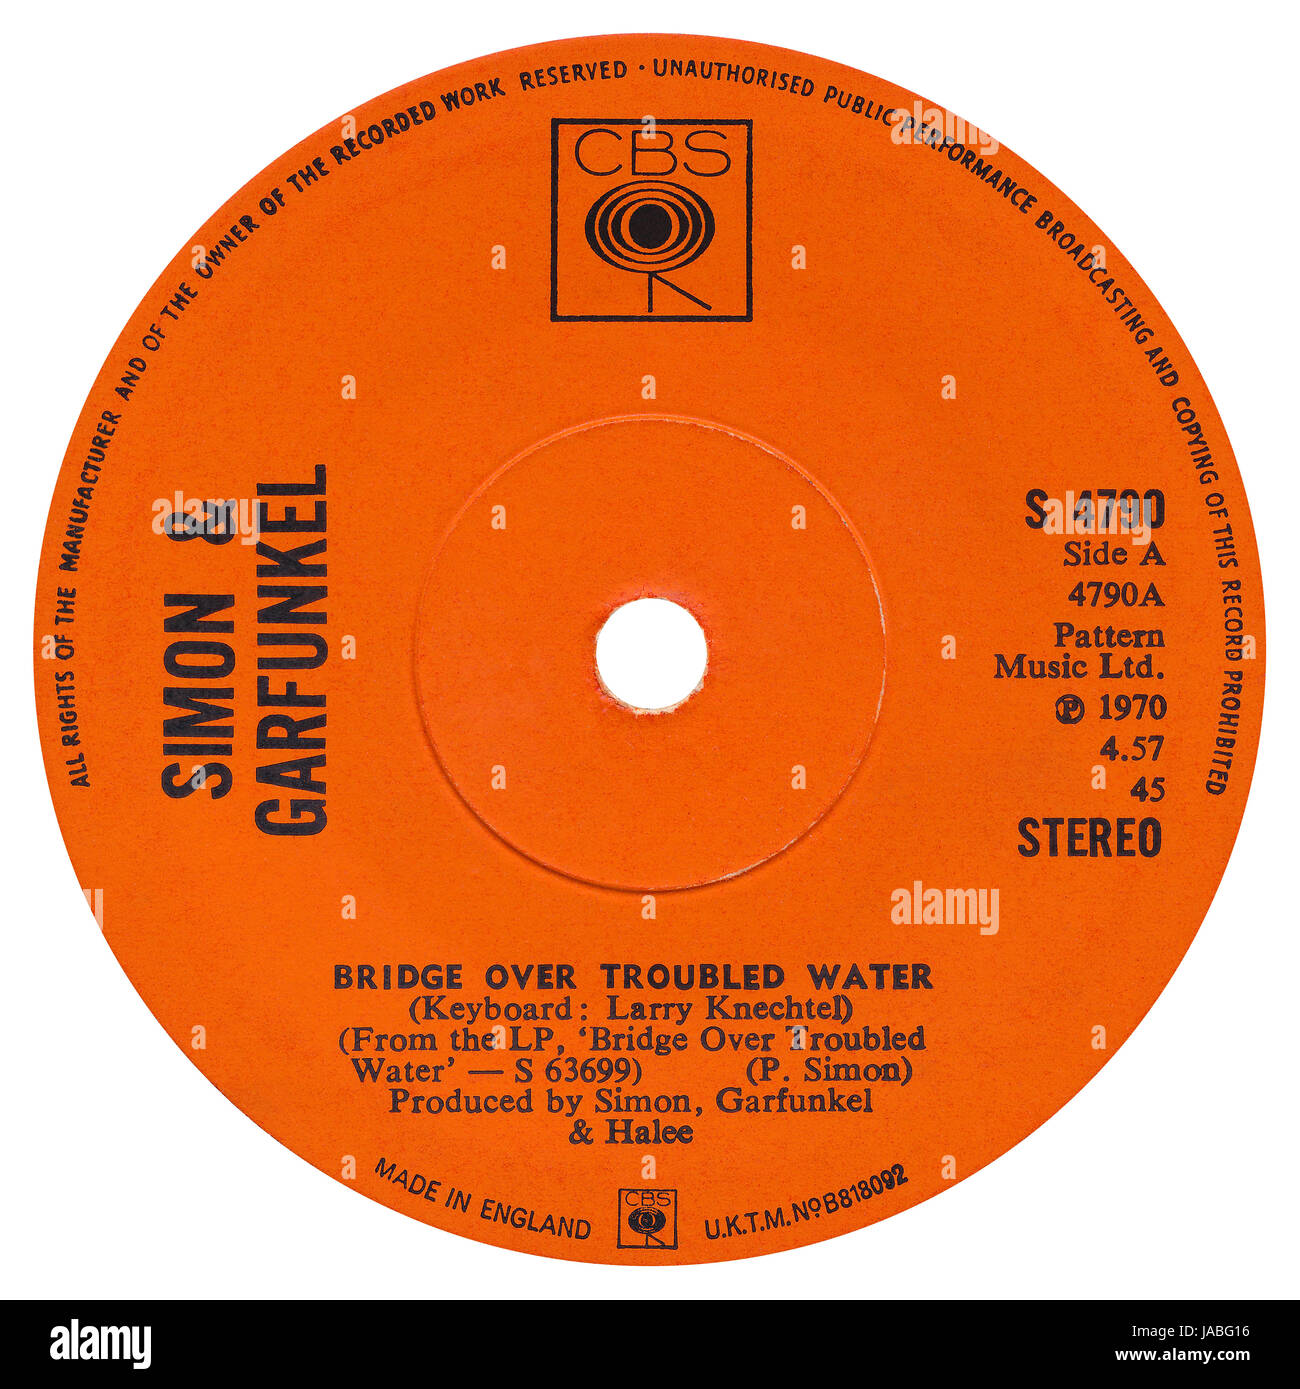 """45 RPM 7"""" UK record label of Bridge Over Troubled Water by Simon & Garfunkel in the CBS label from February 1970. Stock Photo"""